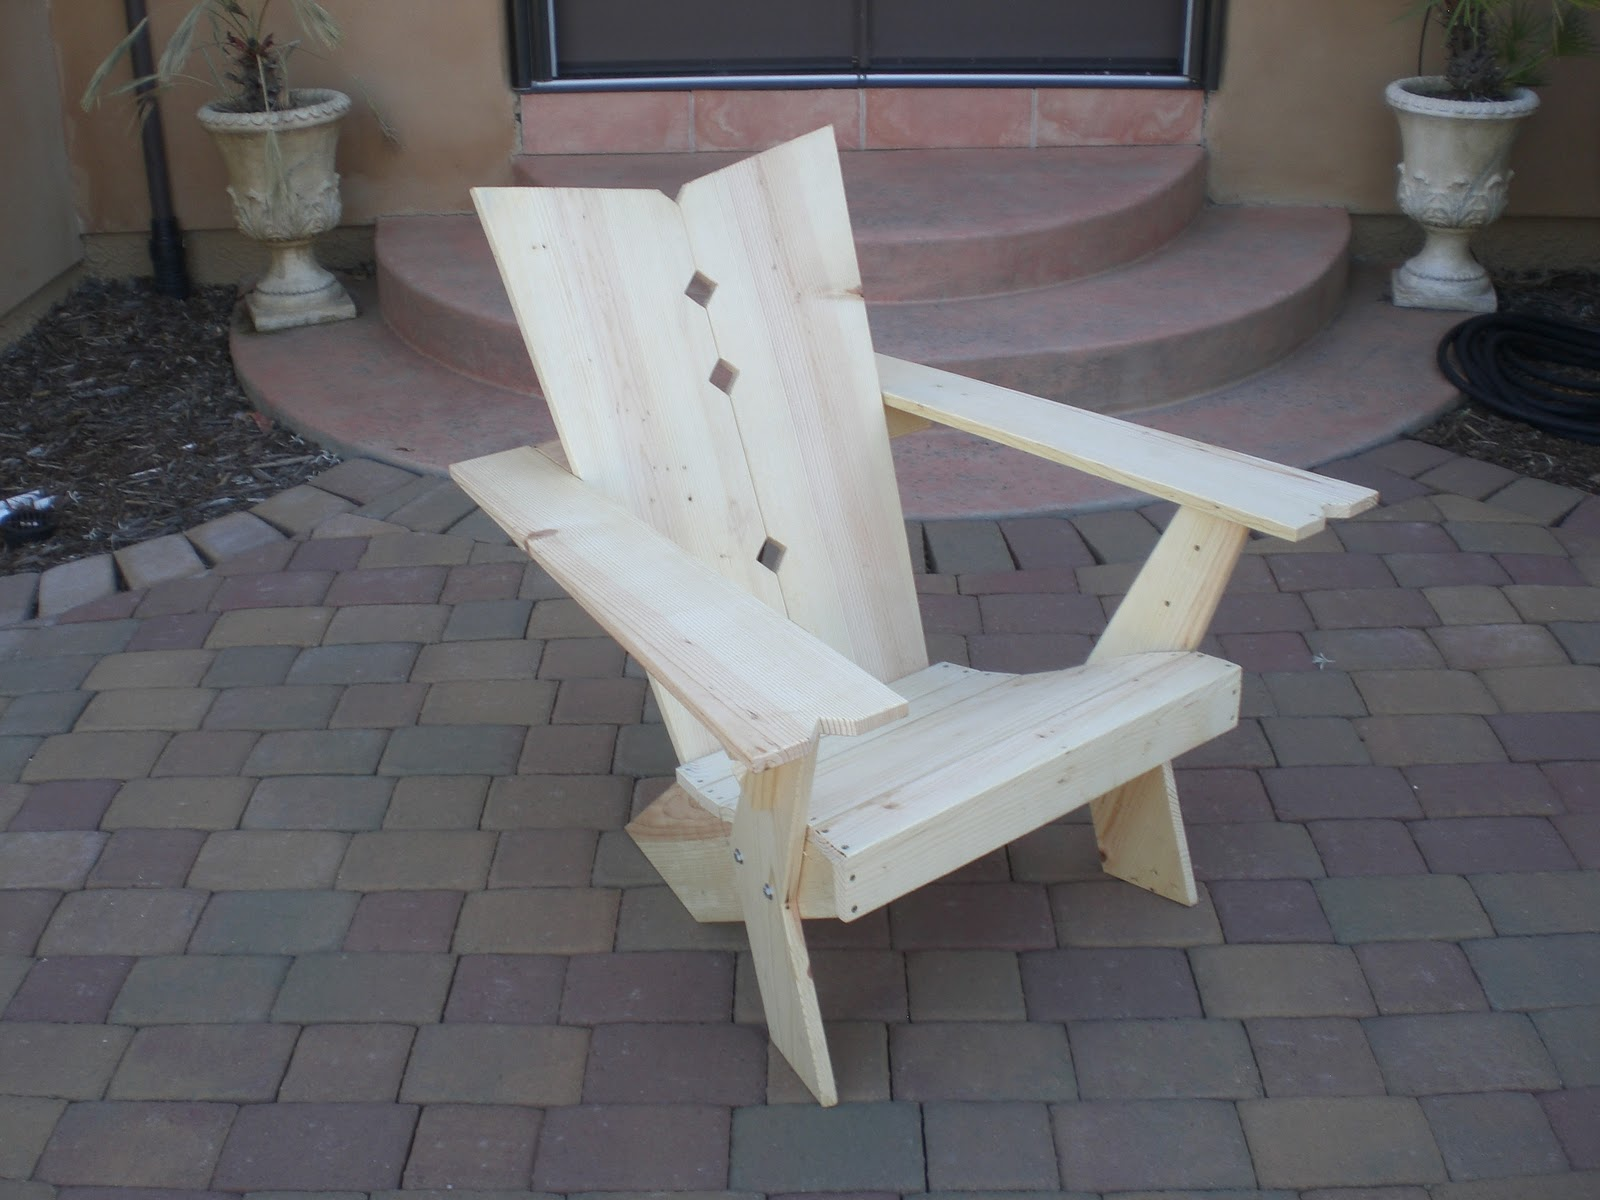 Woodworking News with Award Winning Woodworking Projects NEW